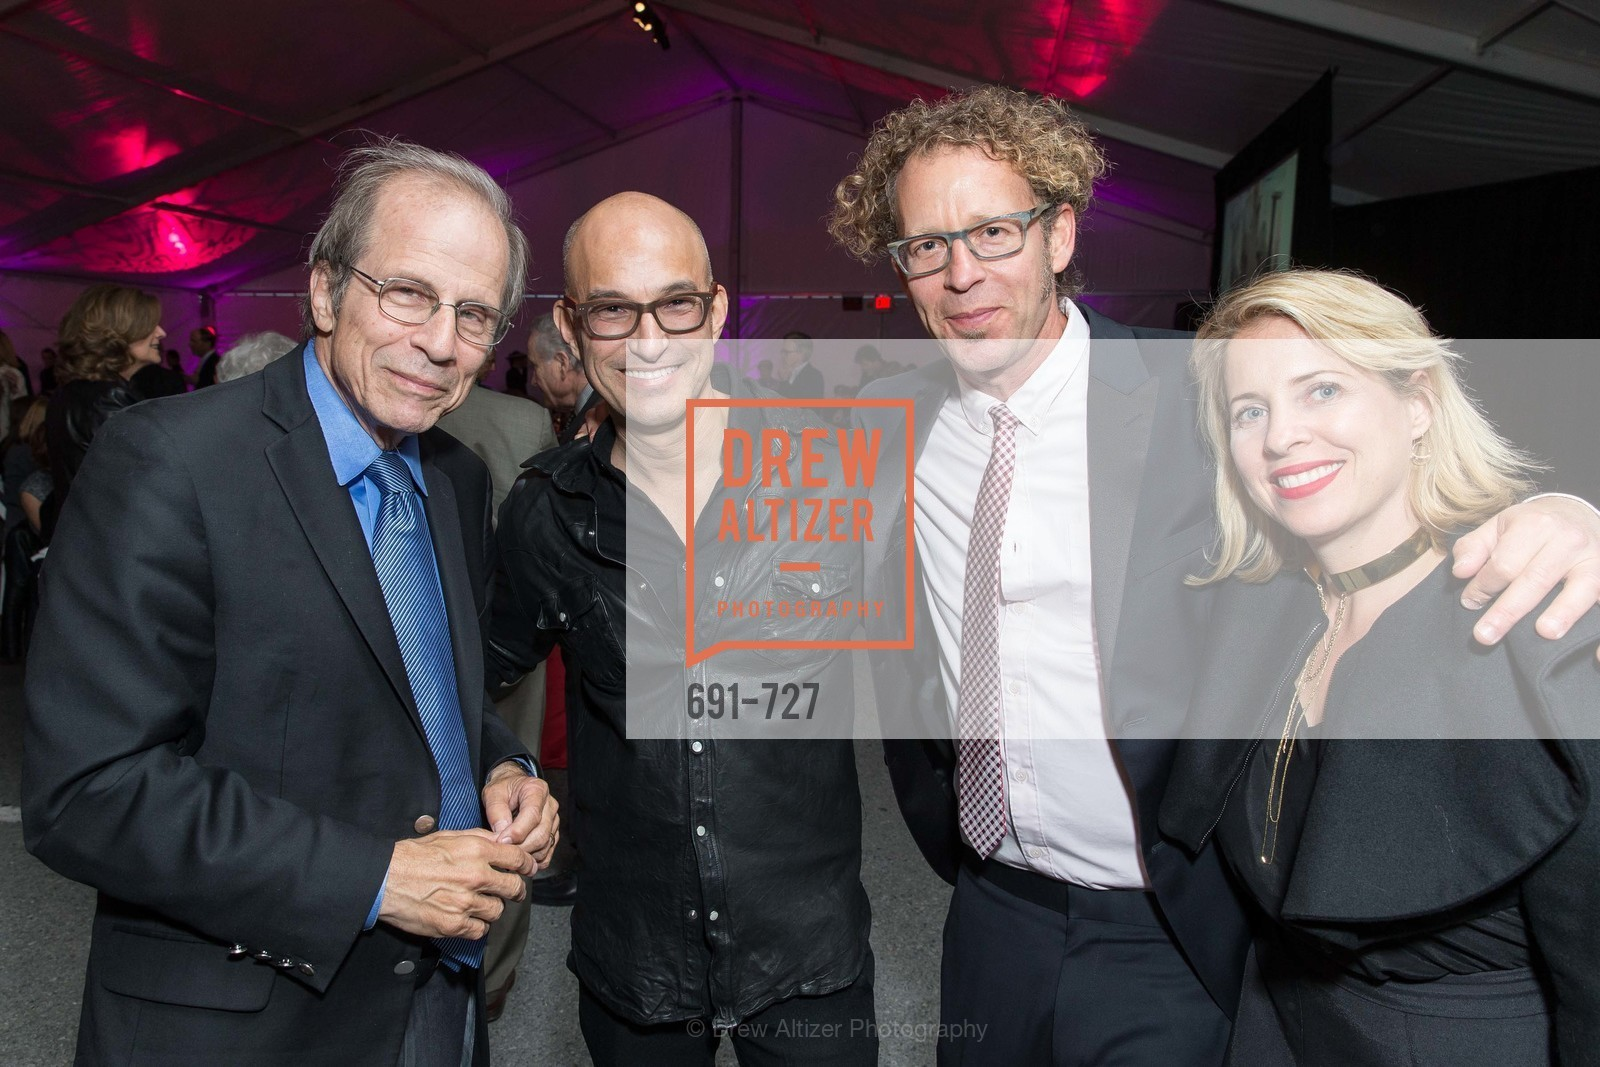 Michael  Krasny, Eric McDougall, Ken Goldberg, Tiffany Shlain, SAN FRANCISCO ART INSTITUTE Gala Honoring Art Visionary and Advocate ROSELYNE CHROMAN SWIG, US, May 14th, 2015,Drew Altizer, Drew Altizer Photography, full-service agency, private events, San Francisco photographer, photographer california